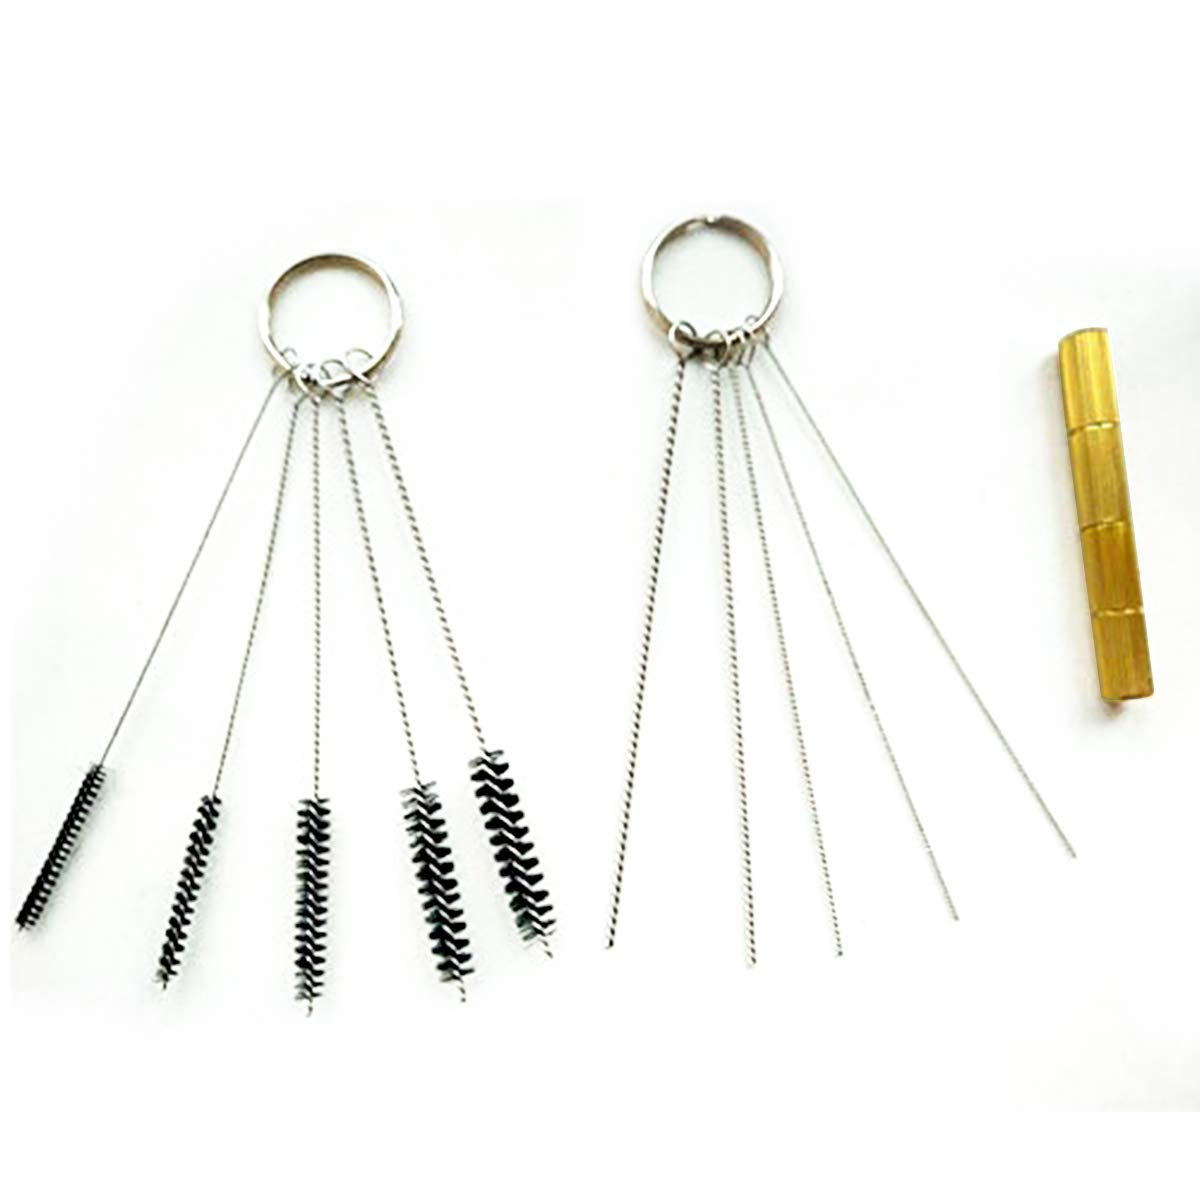 Yinroom Carburetors Carbon Dirt Jet Remove Cleaner Tool Kit ,11Pcs Motorcycle Carb Brush Tool Jet Nozzle Wire Terminal Plug Cleaning Needle Brush Kit for Motorcycle ATV Moped Welder Carb